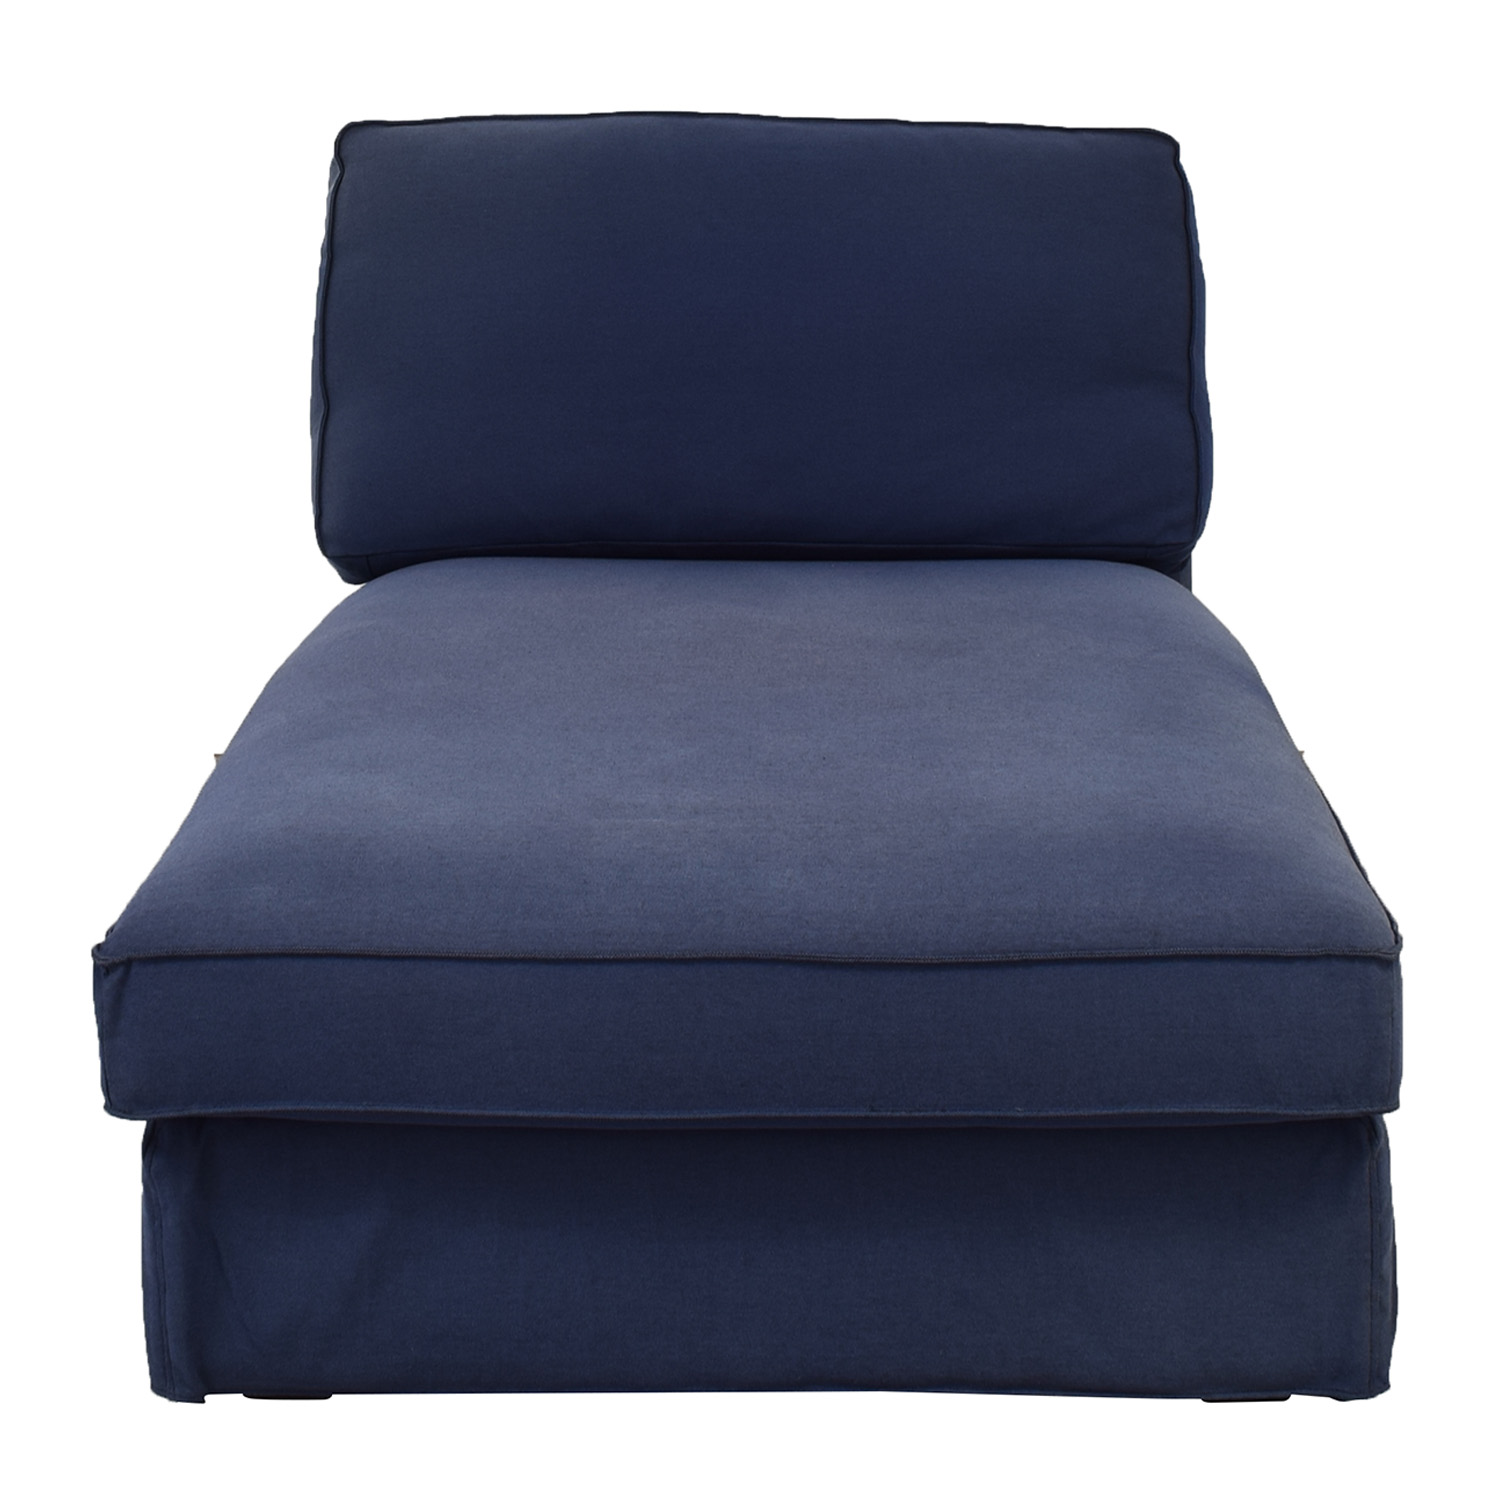 IKEA IKEA Blue Tweed Lounger used